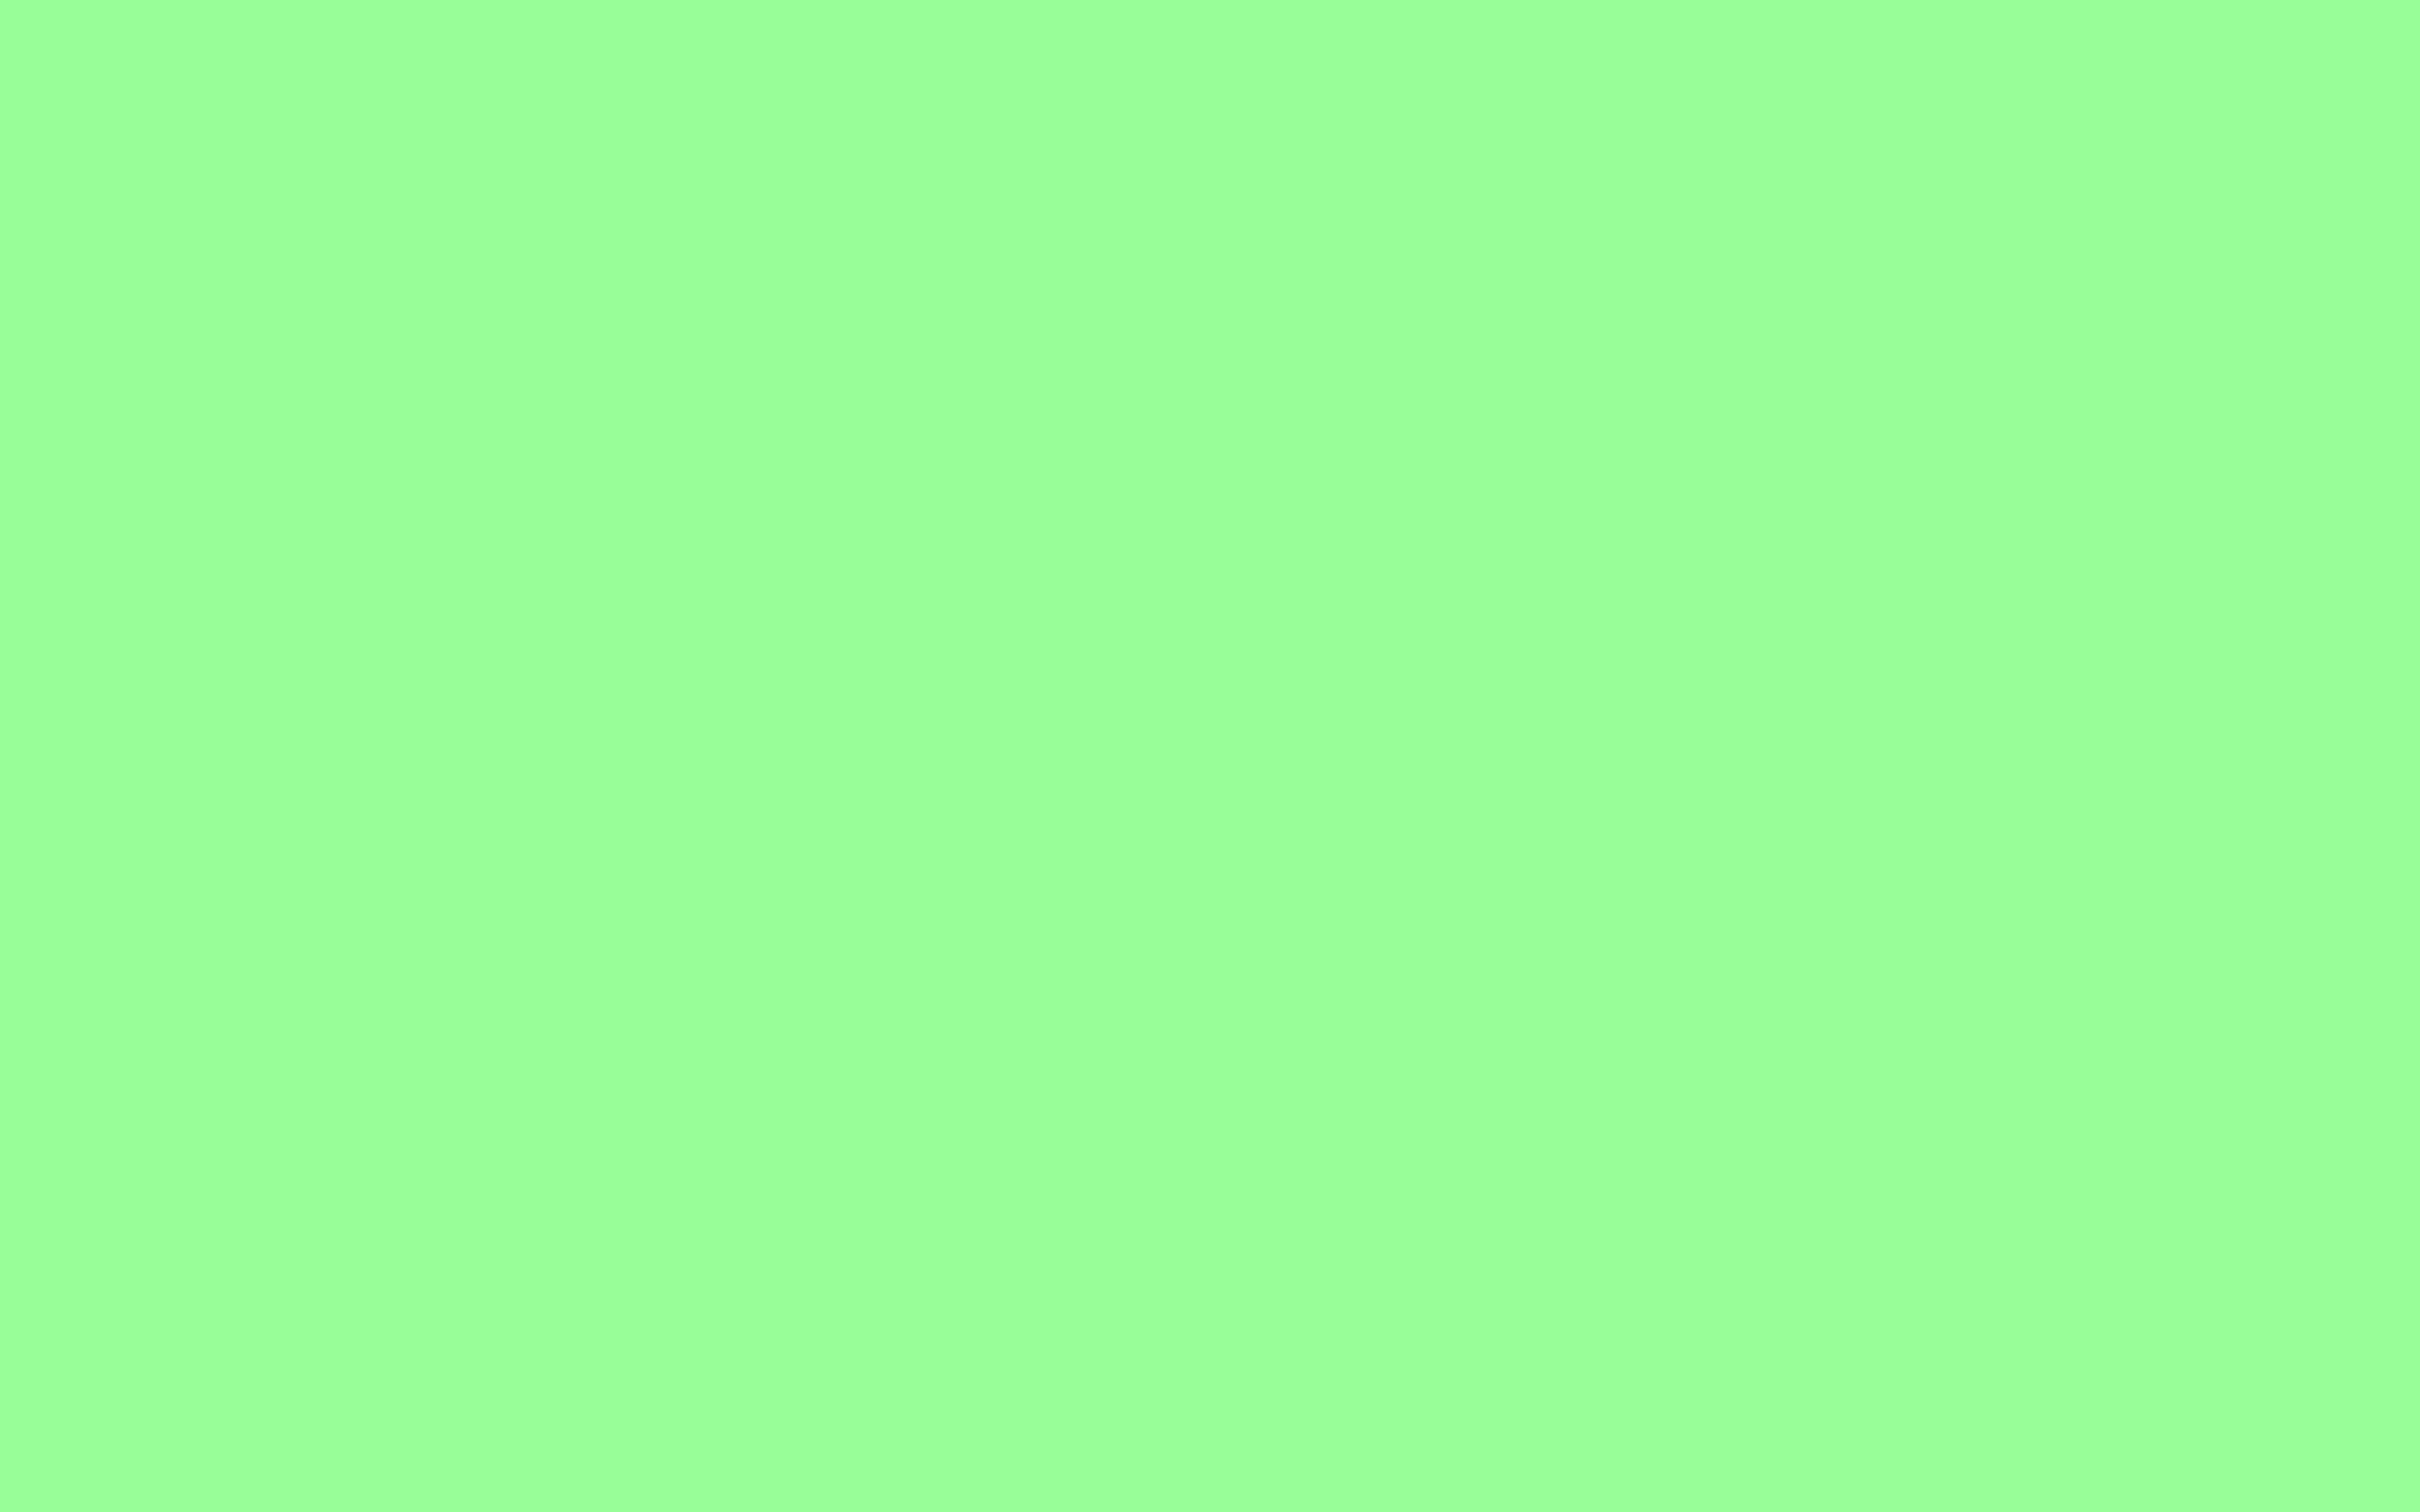 2560x1600  Mint Green Solid Color Background